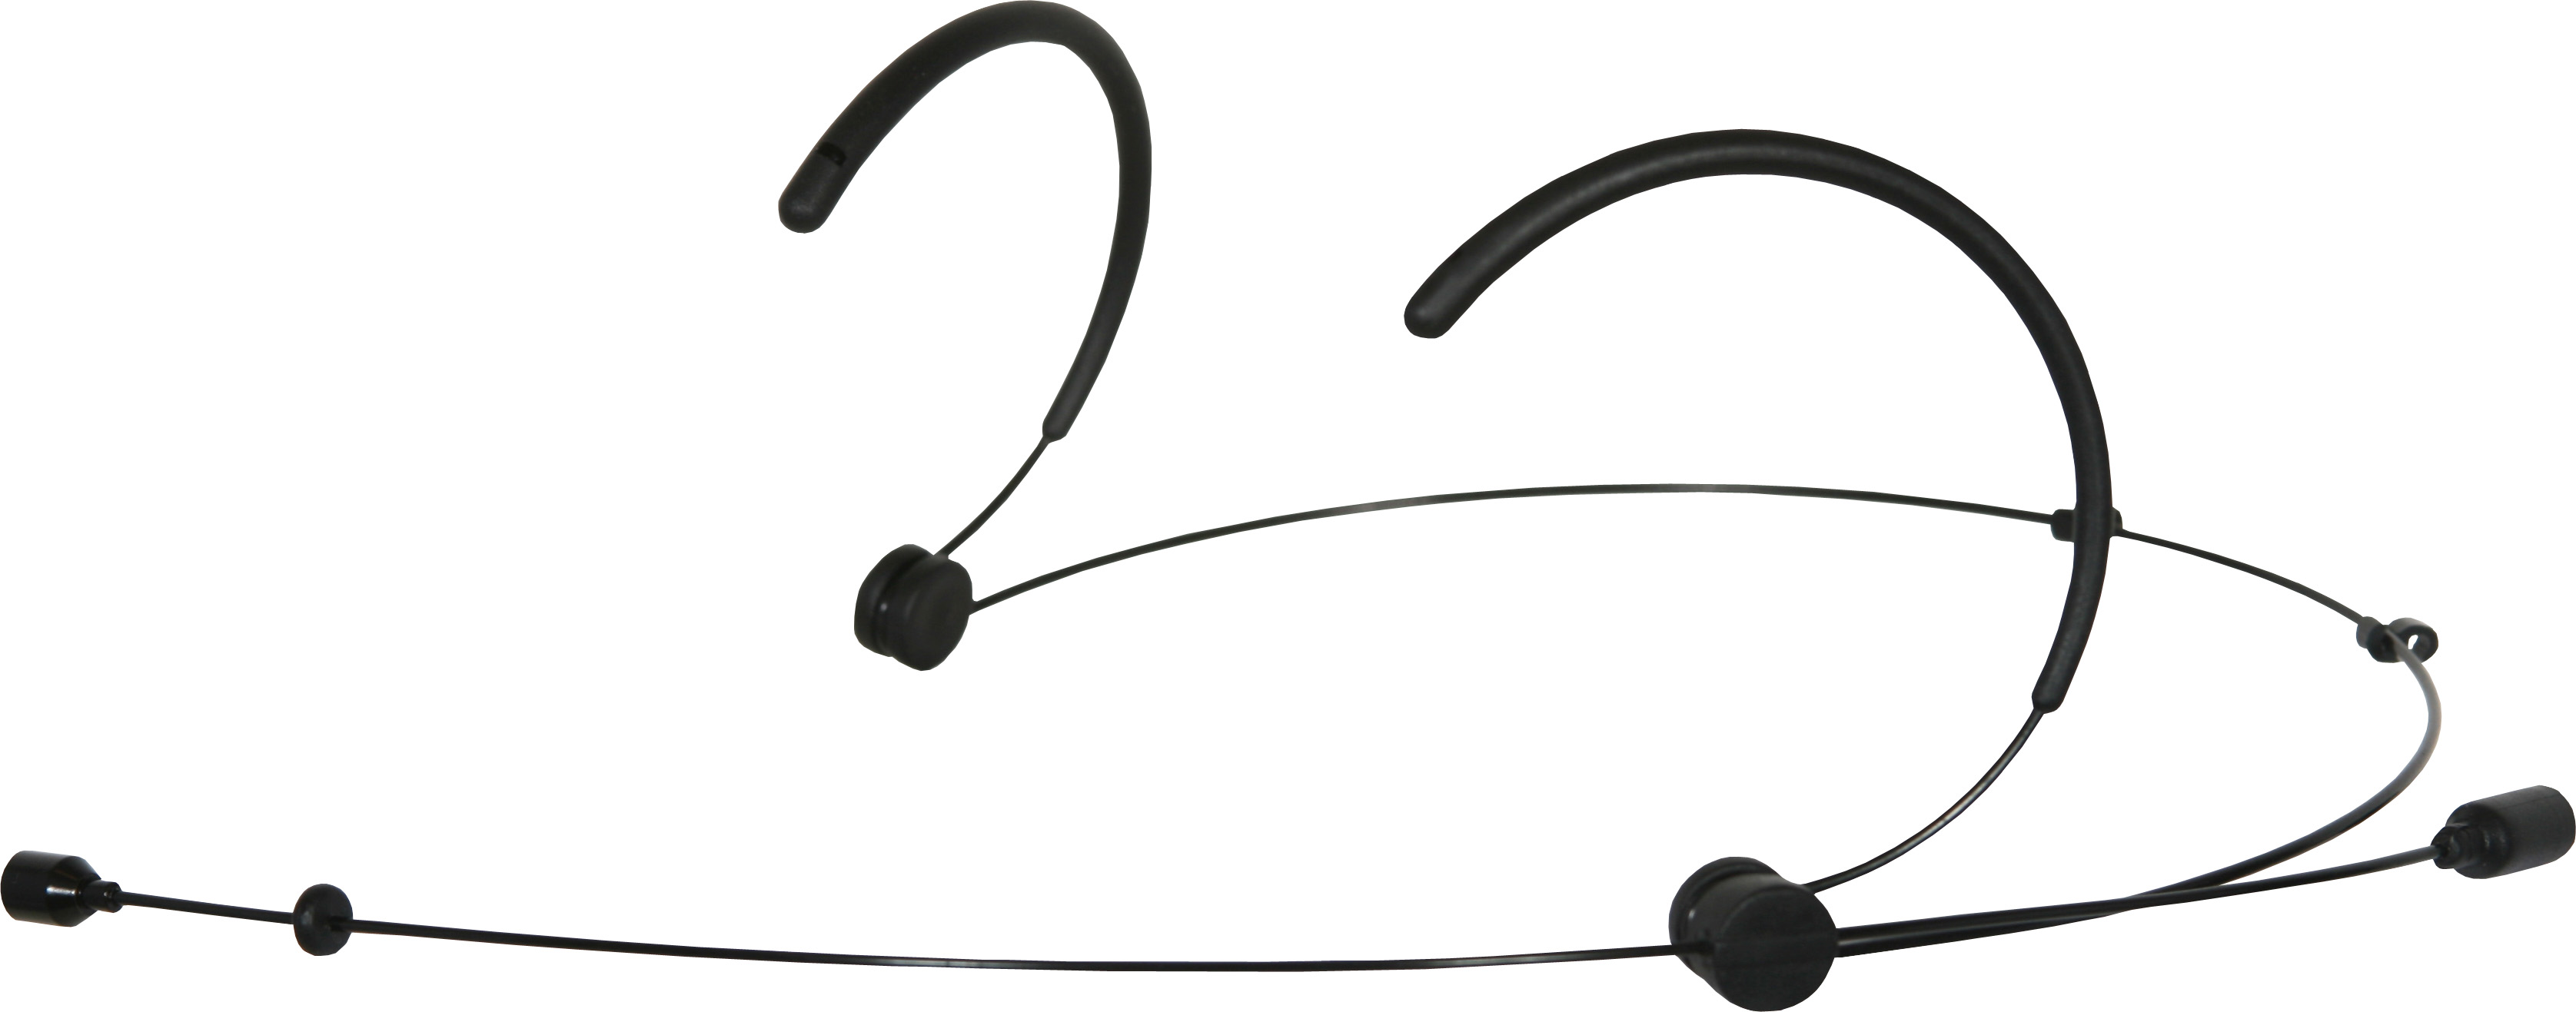 Galaxy Audio Hs3 Obk Gal Black Lightweight Headset